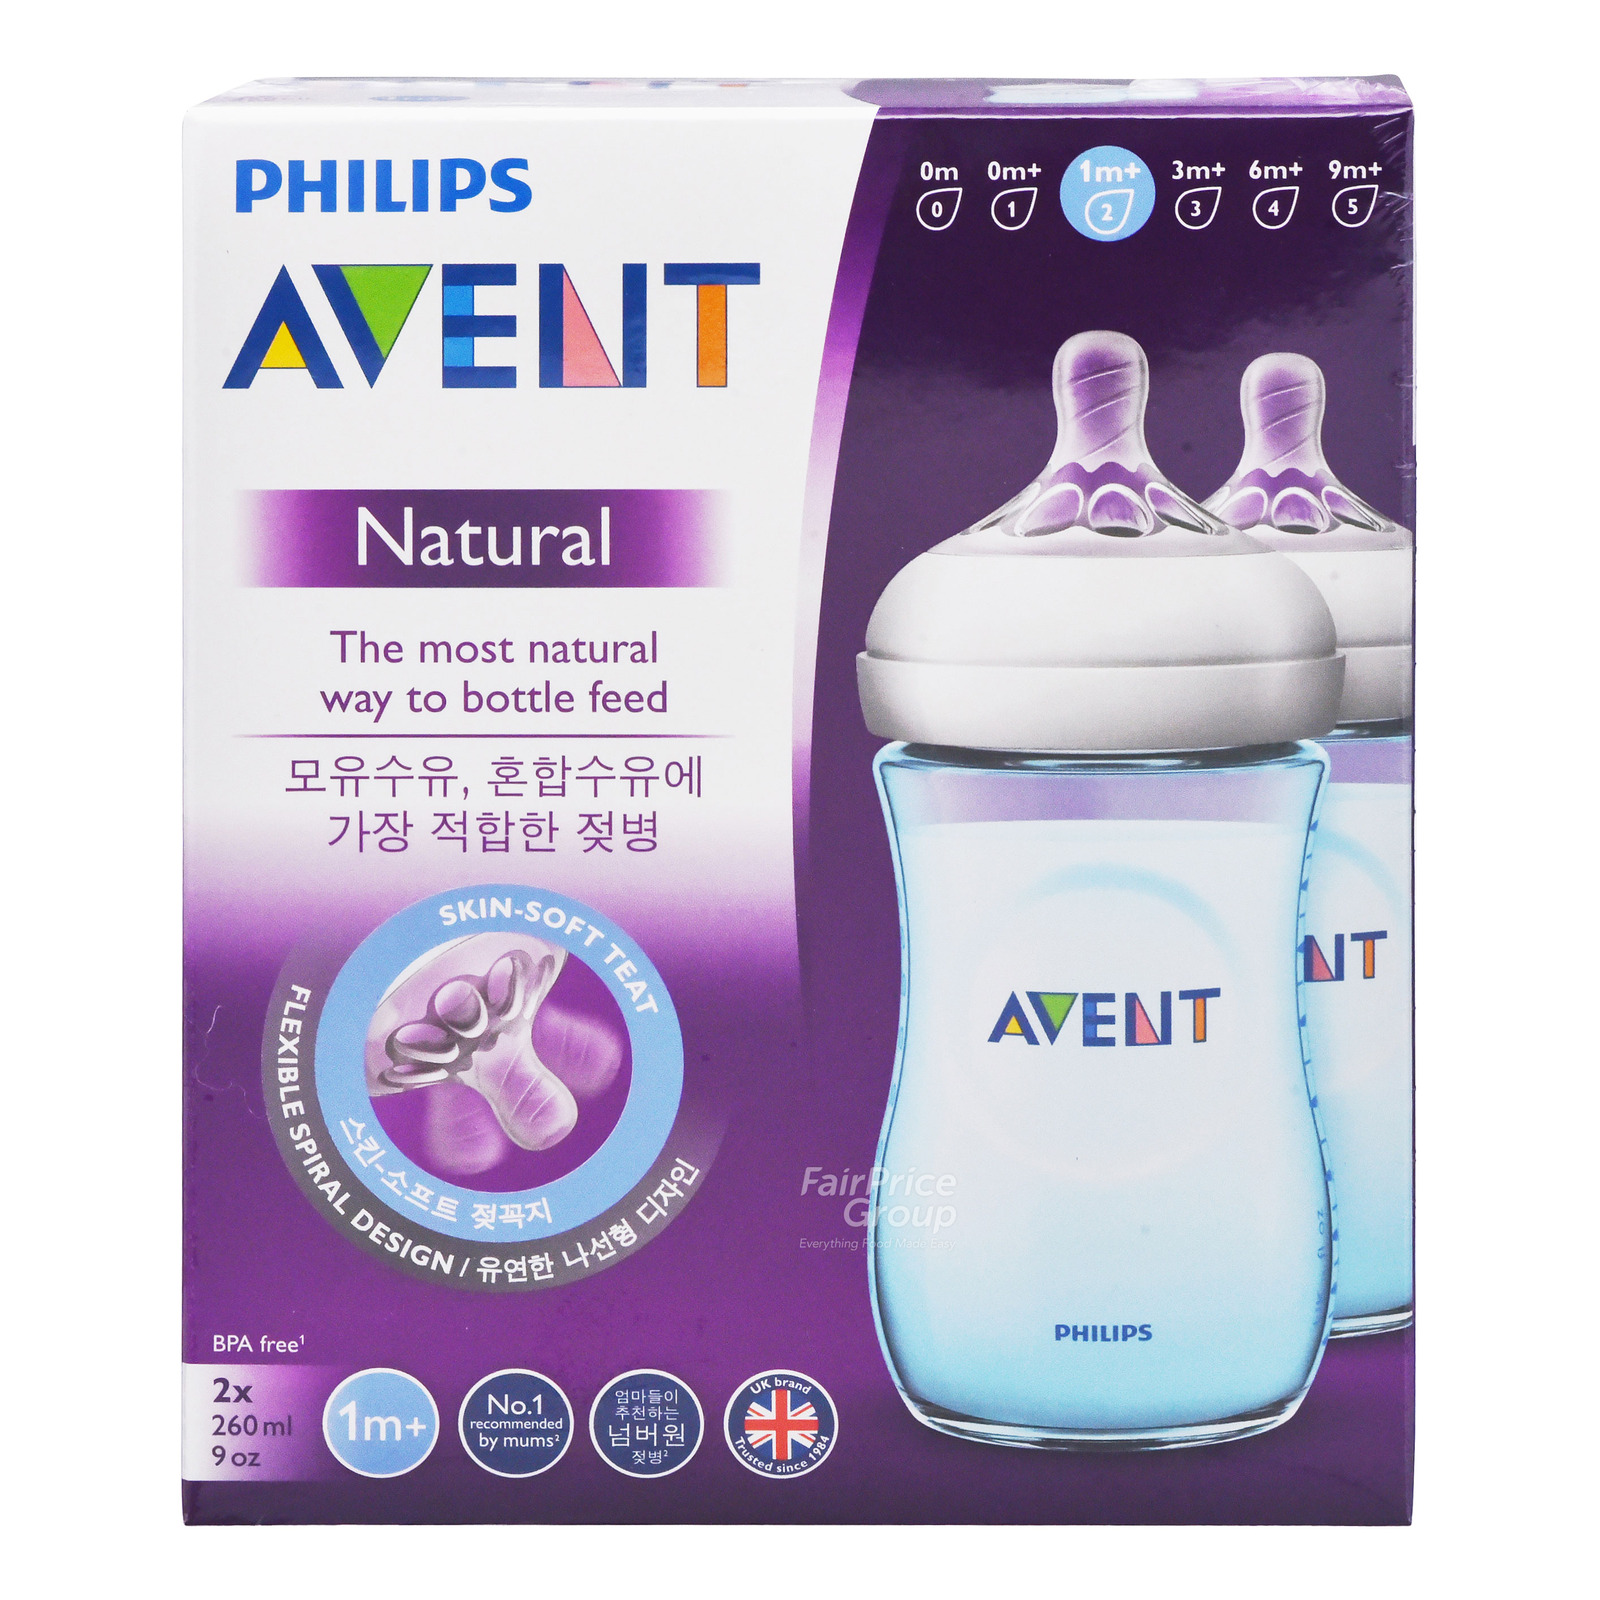 Philips Avent Baby Bottle - Natural (Blue)